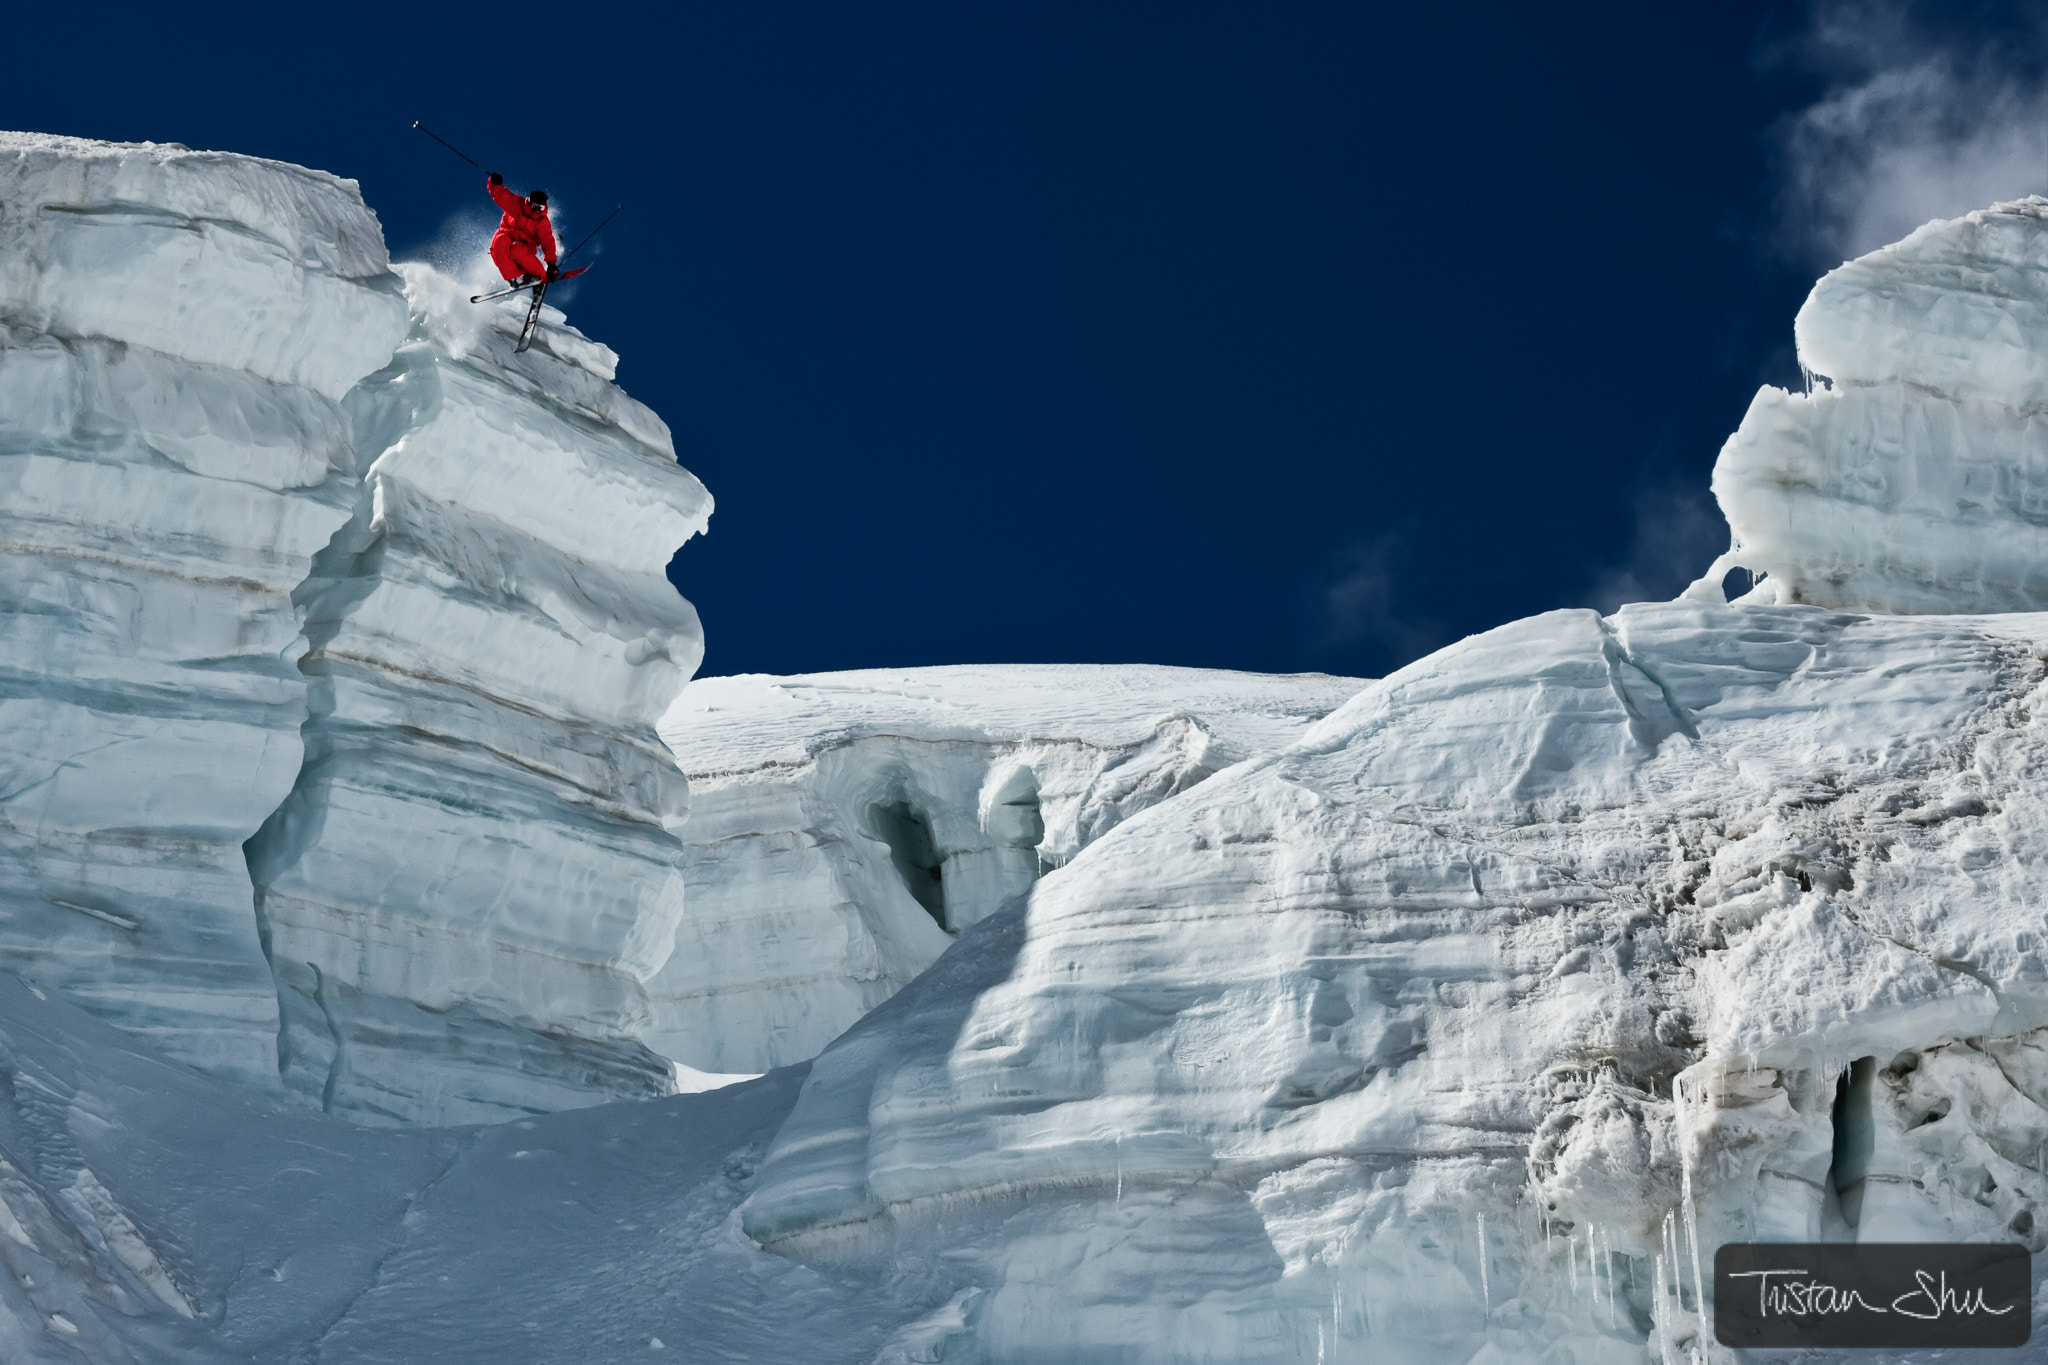 Photograph Jumping Ice Cliff with Guerlain Chicherit by Tristan Shu on 500px